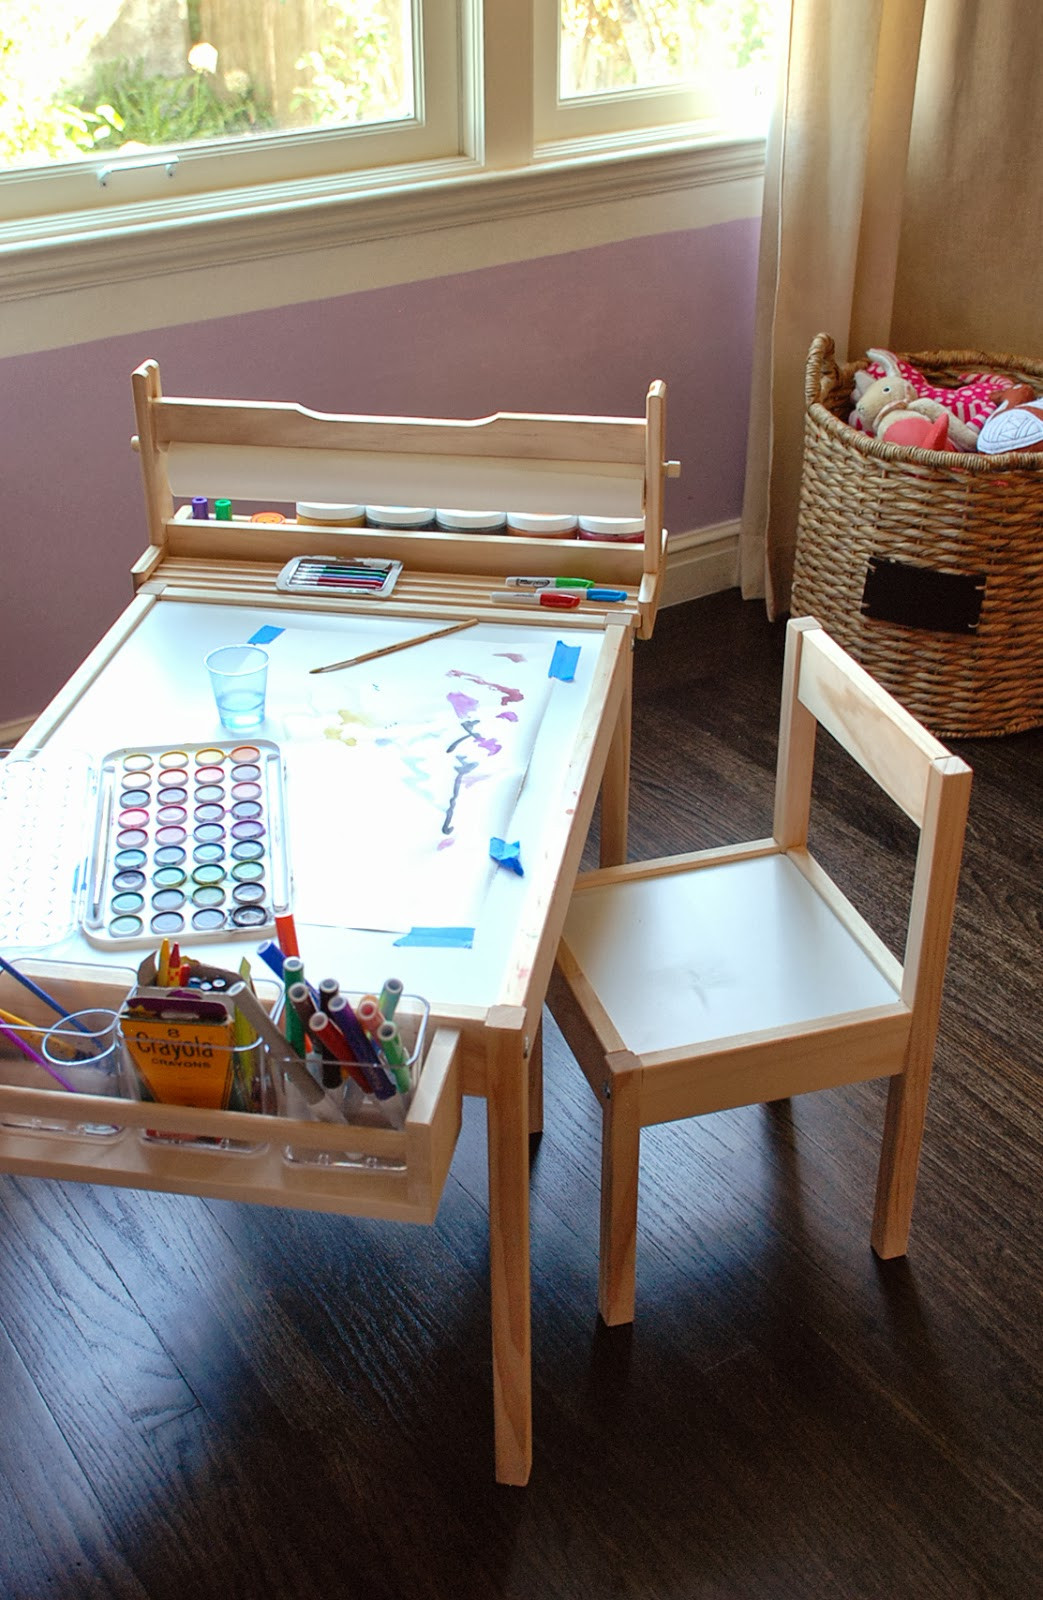 Best ideas about DIY Kids Table . Save or Pin Design Ingenuity DIY Kids Craft Table Now.